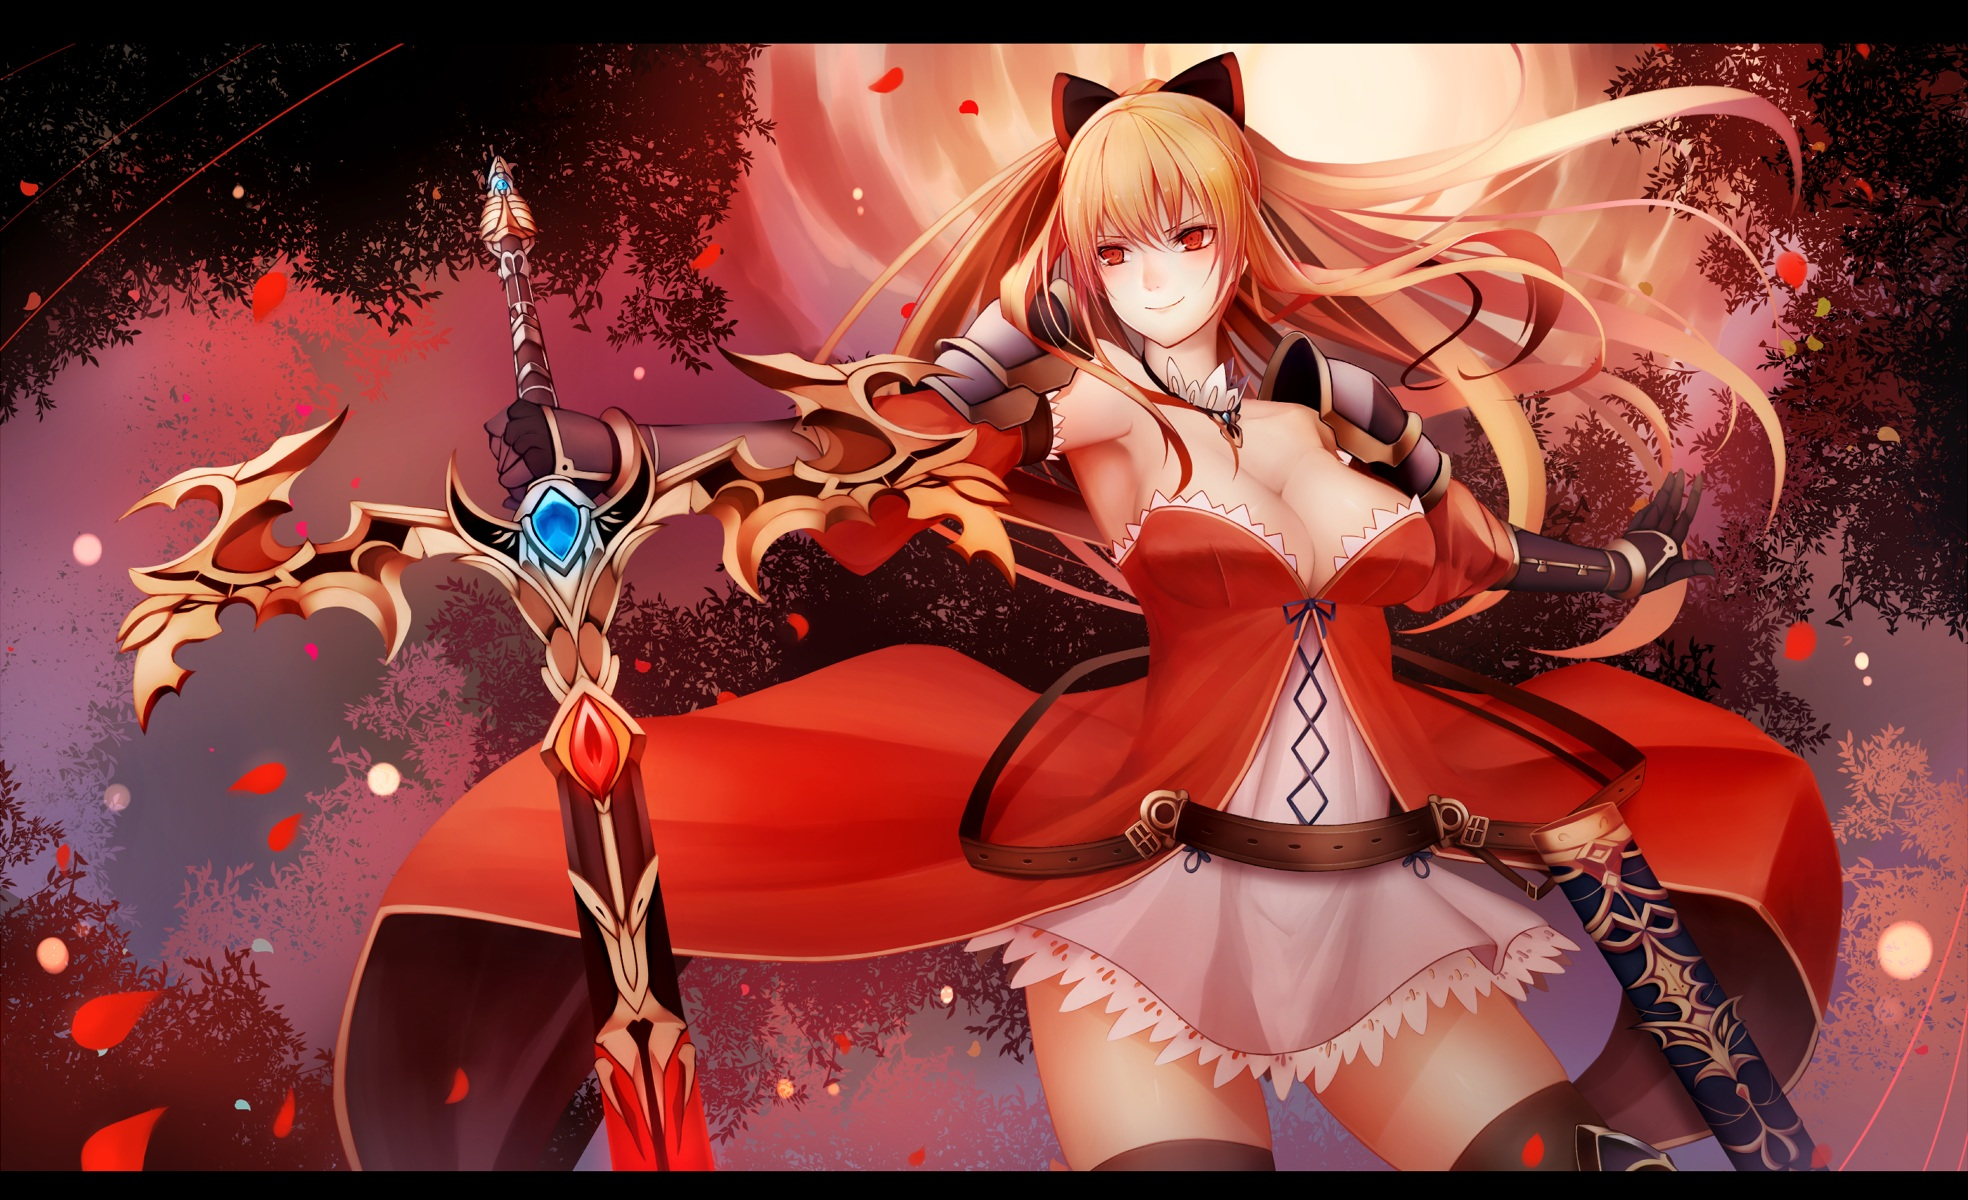 Anime Wallpaper Newwallpapers Org